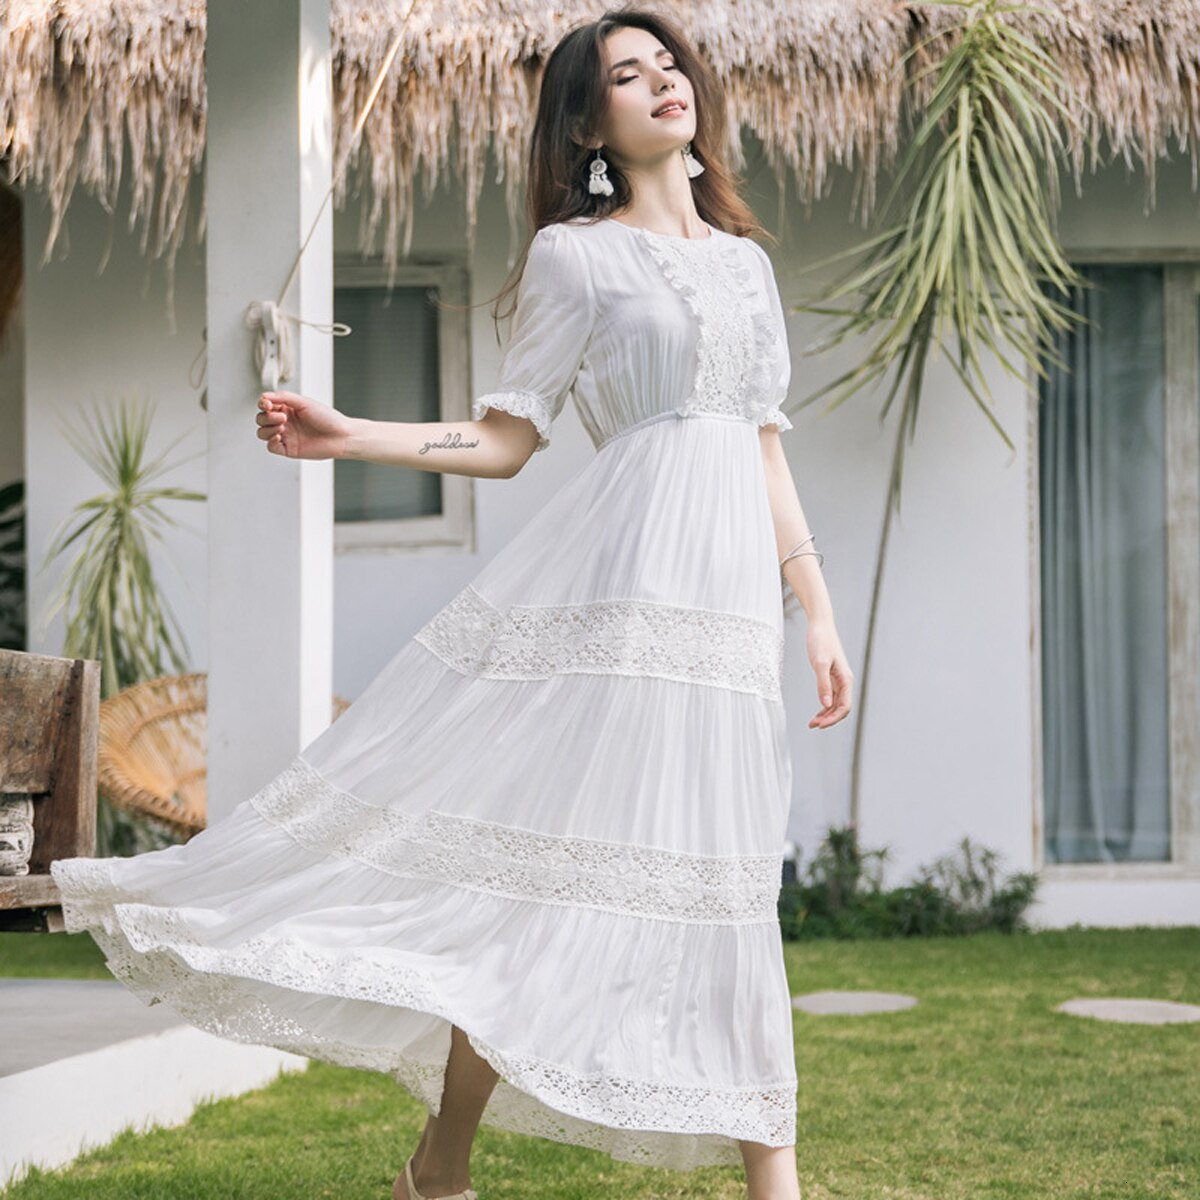 New Bohemian Hippie Big Swing Holiday Beach Dress O-Neck Half Sleeve Spring Summer Dresses Women White Patchwork Lace Dress 3